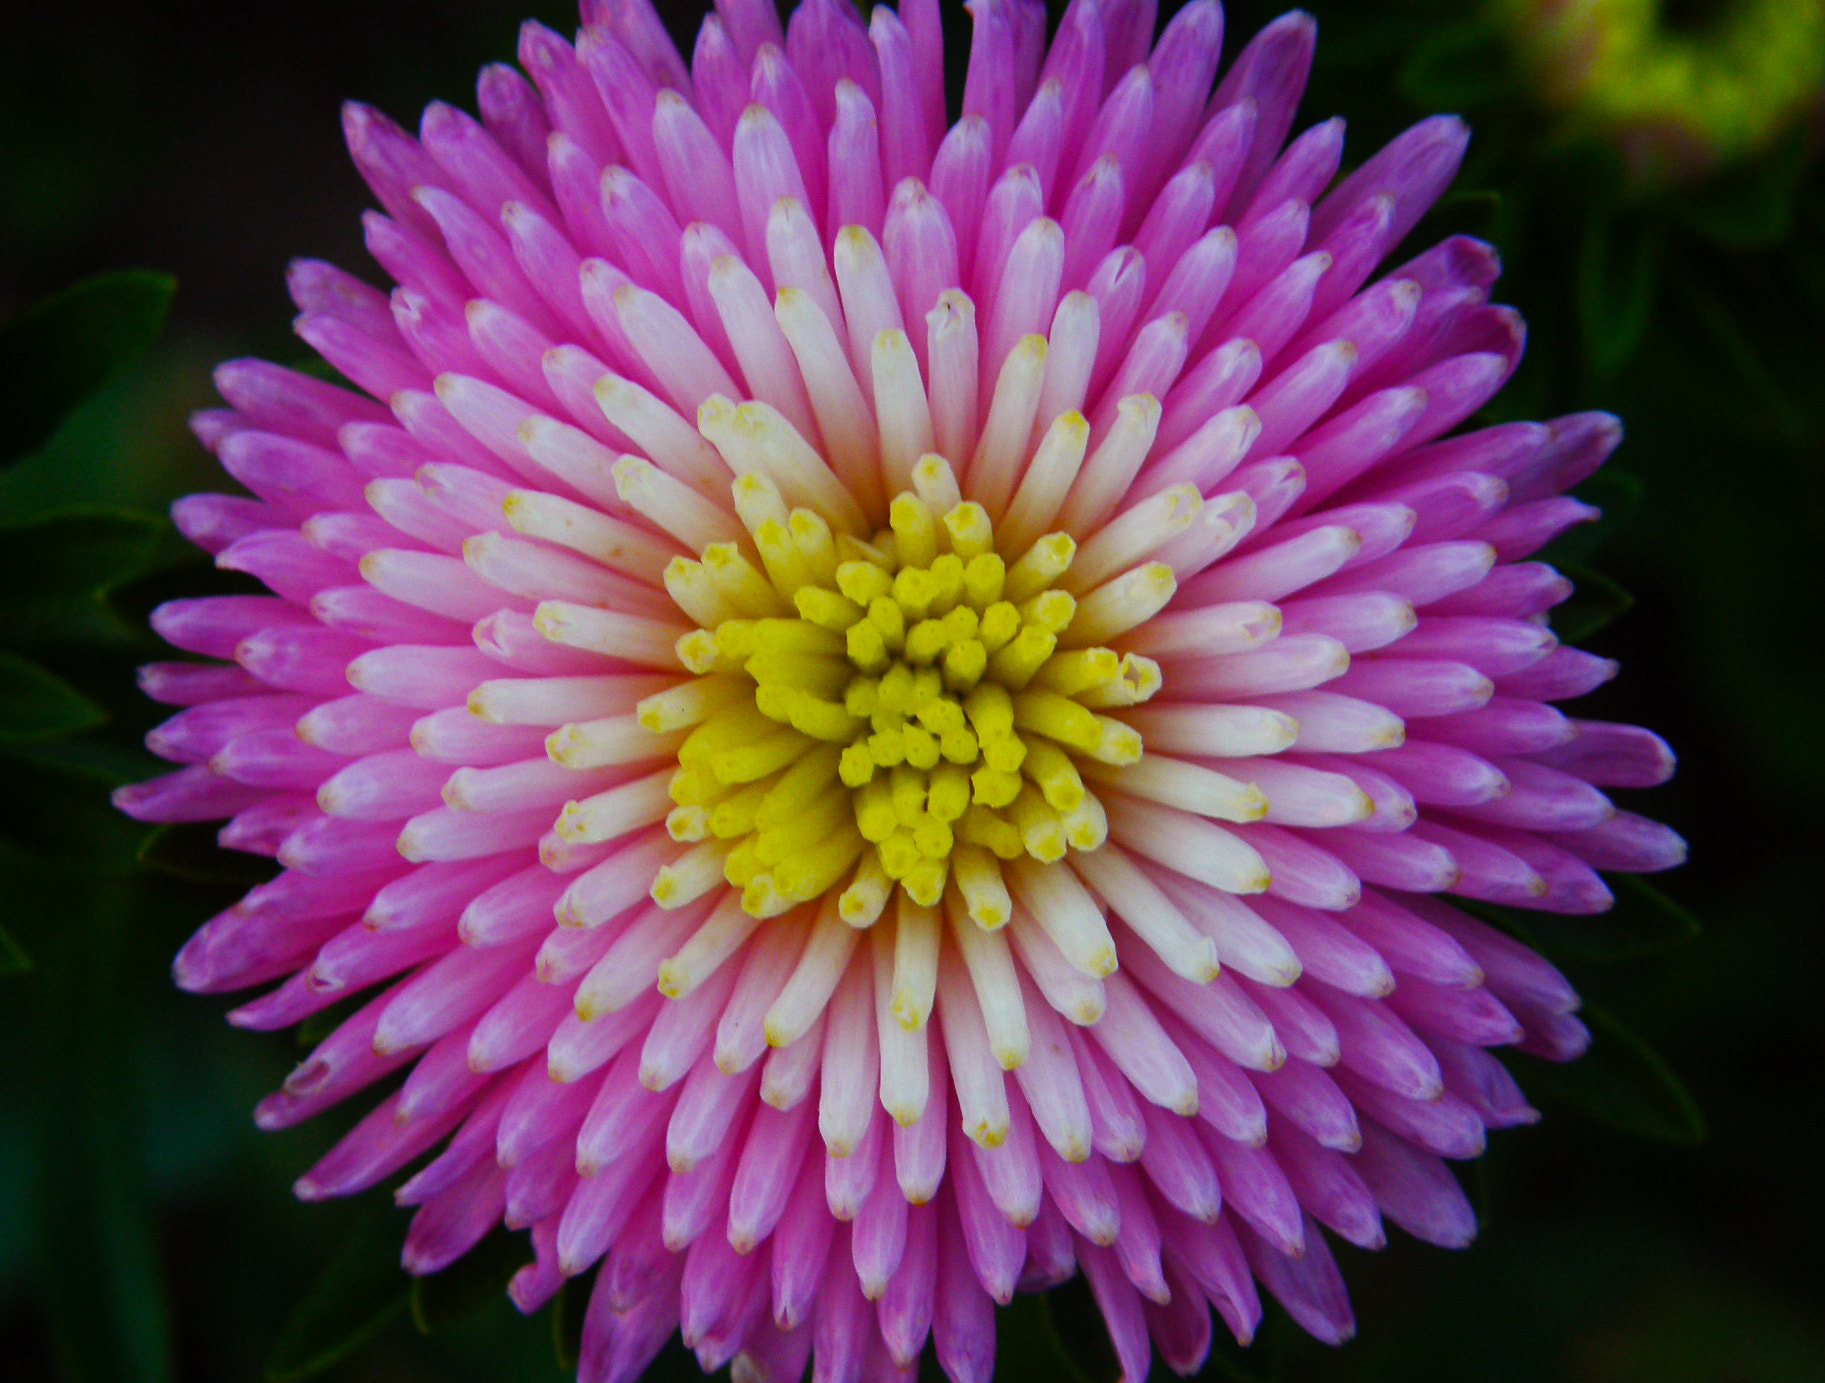 Photograph The flower by Iva Mihalic on 500px